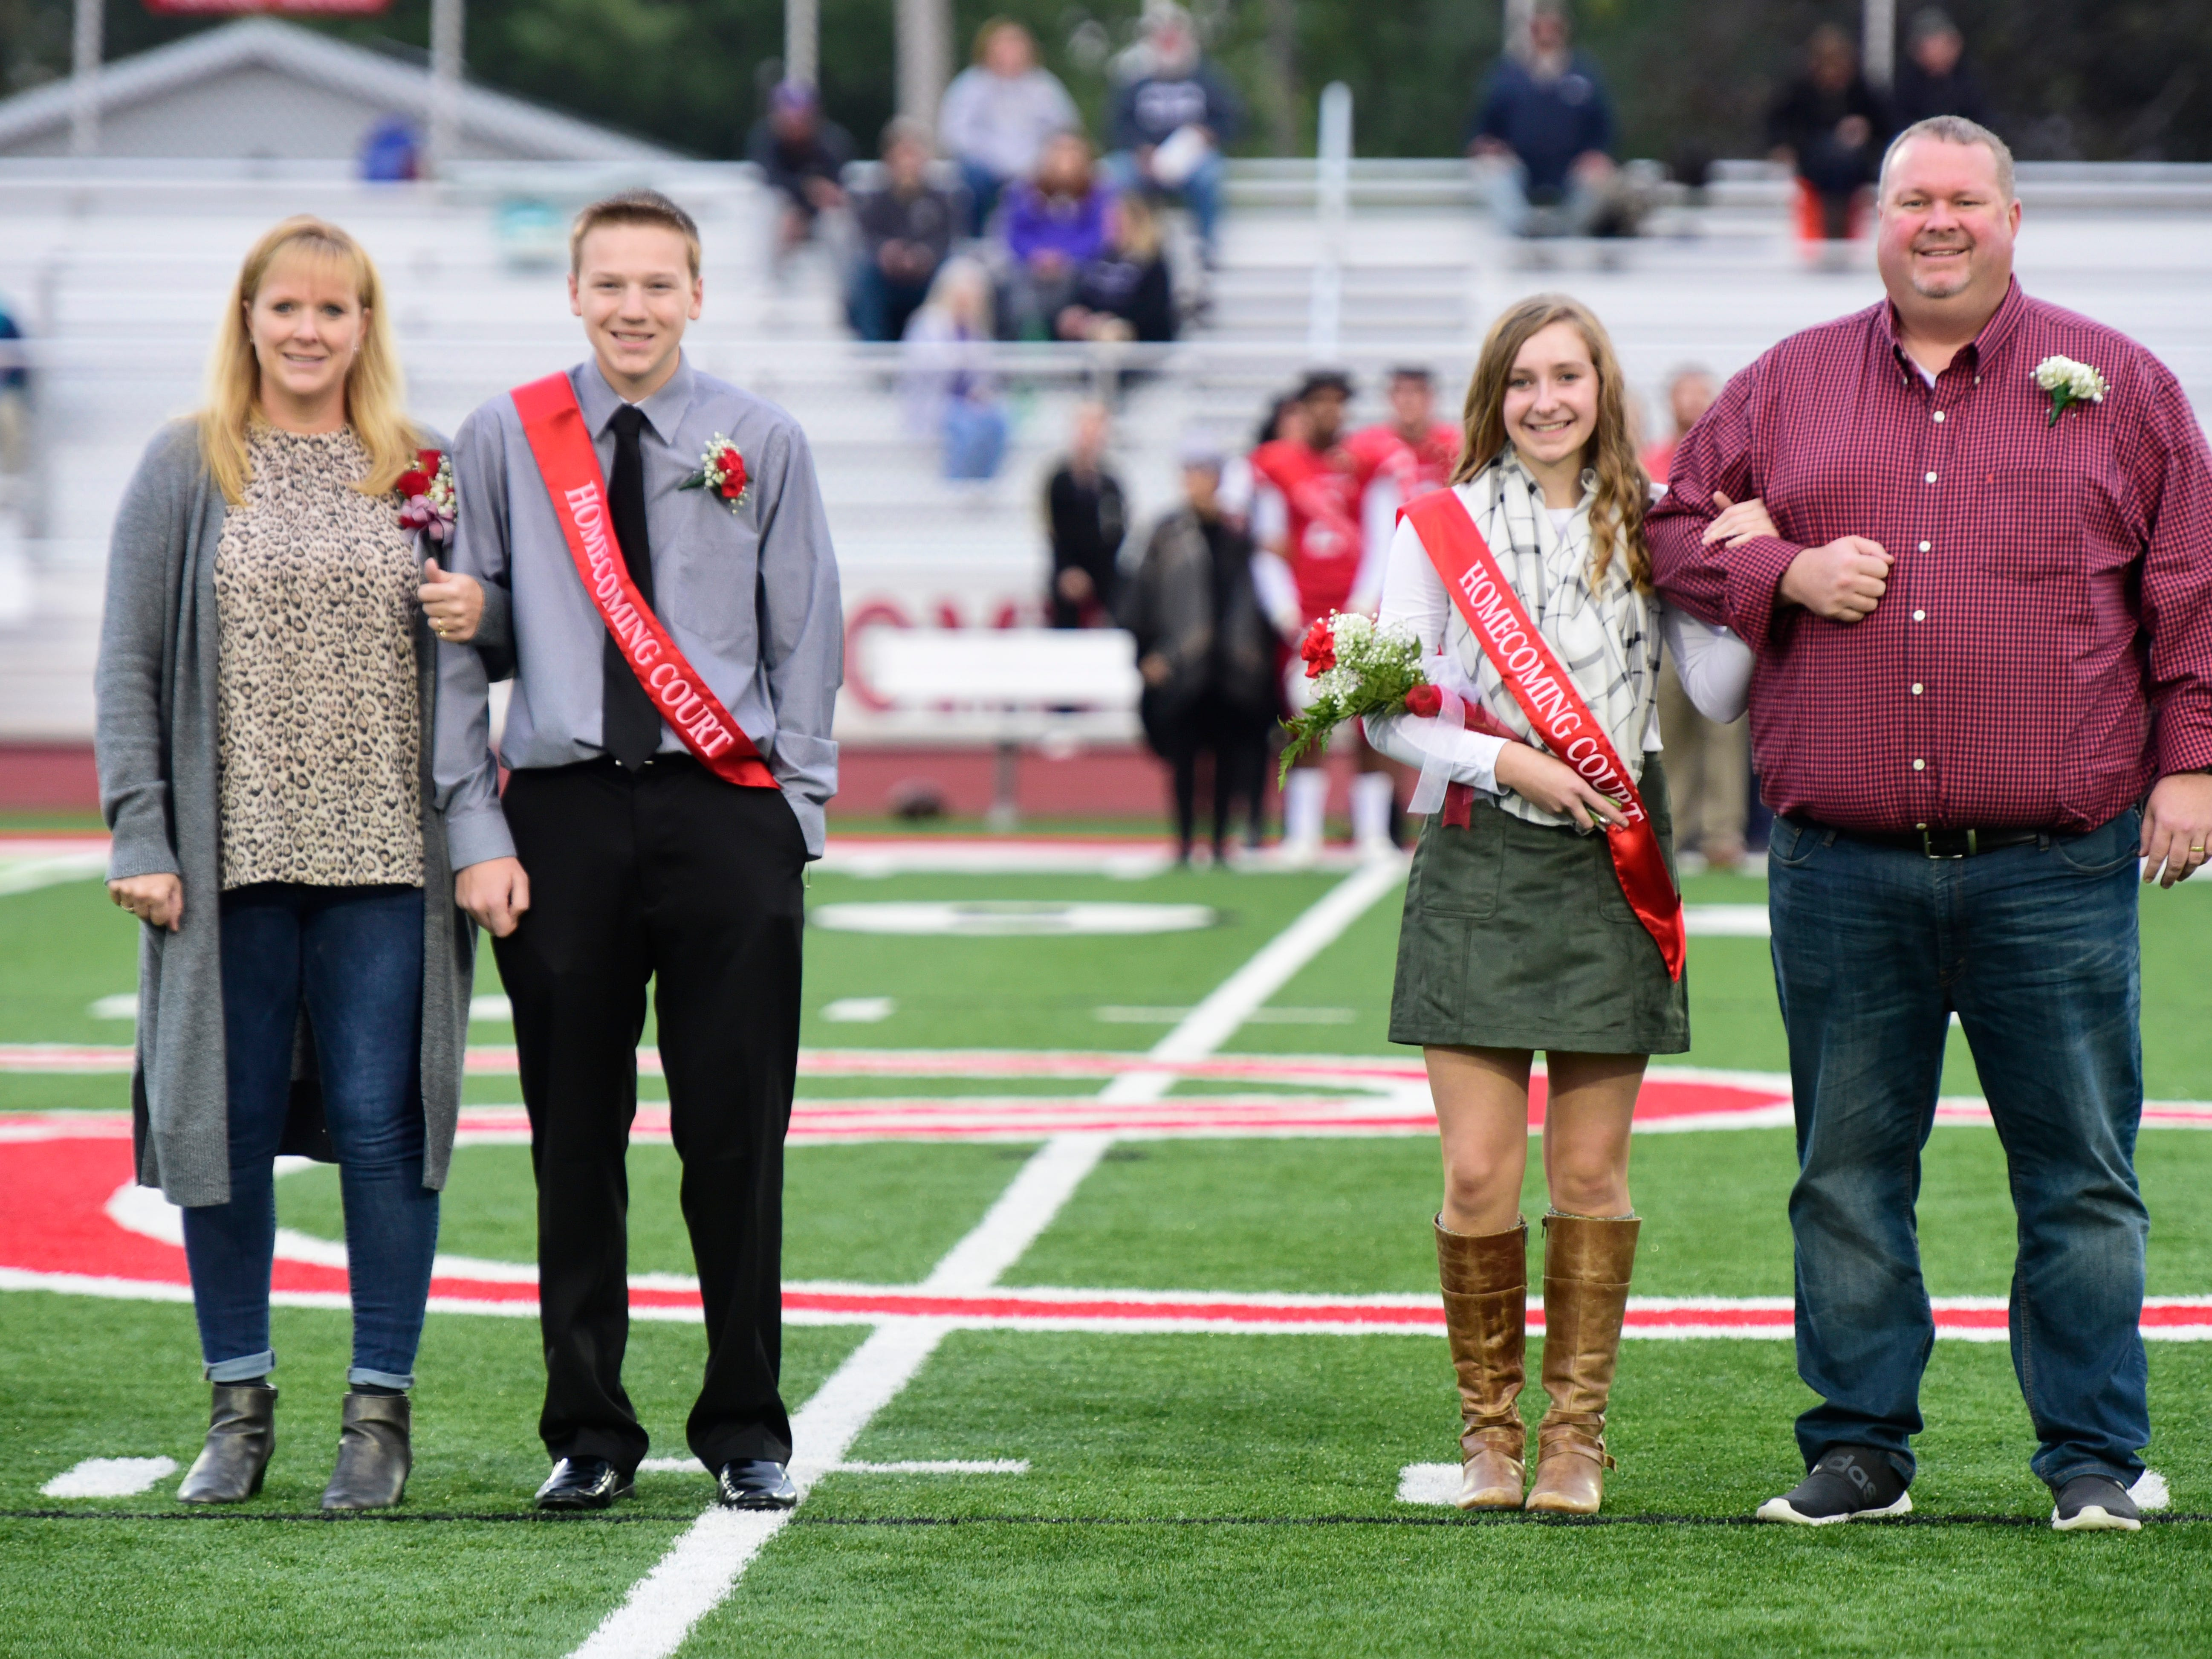 Port Clinton High School 2018 freshman homecoming attendants Luke Halsey, left, and Marcella Brenner.